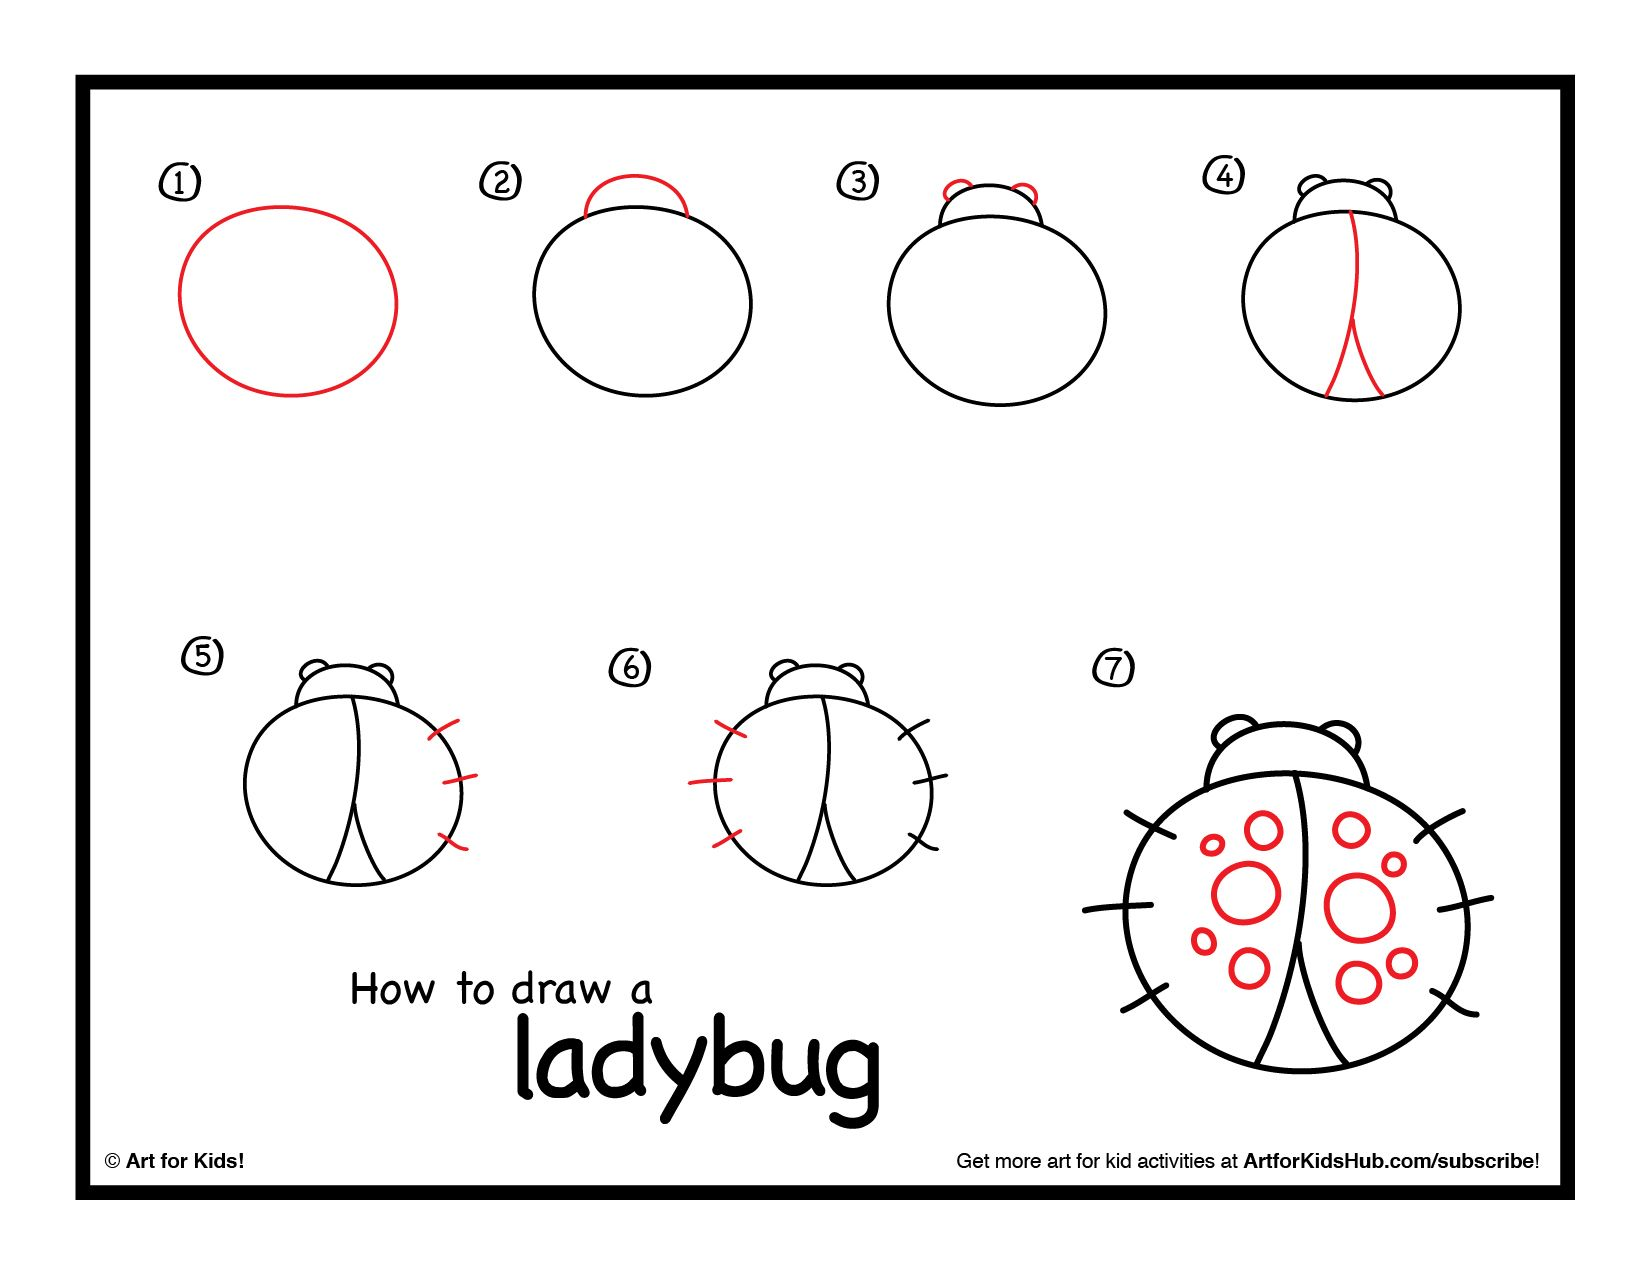 How To Draw A Ladybug - Art For Kids Hub - | Ladybug ...